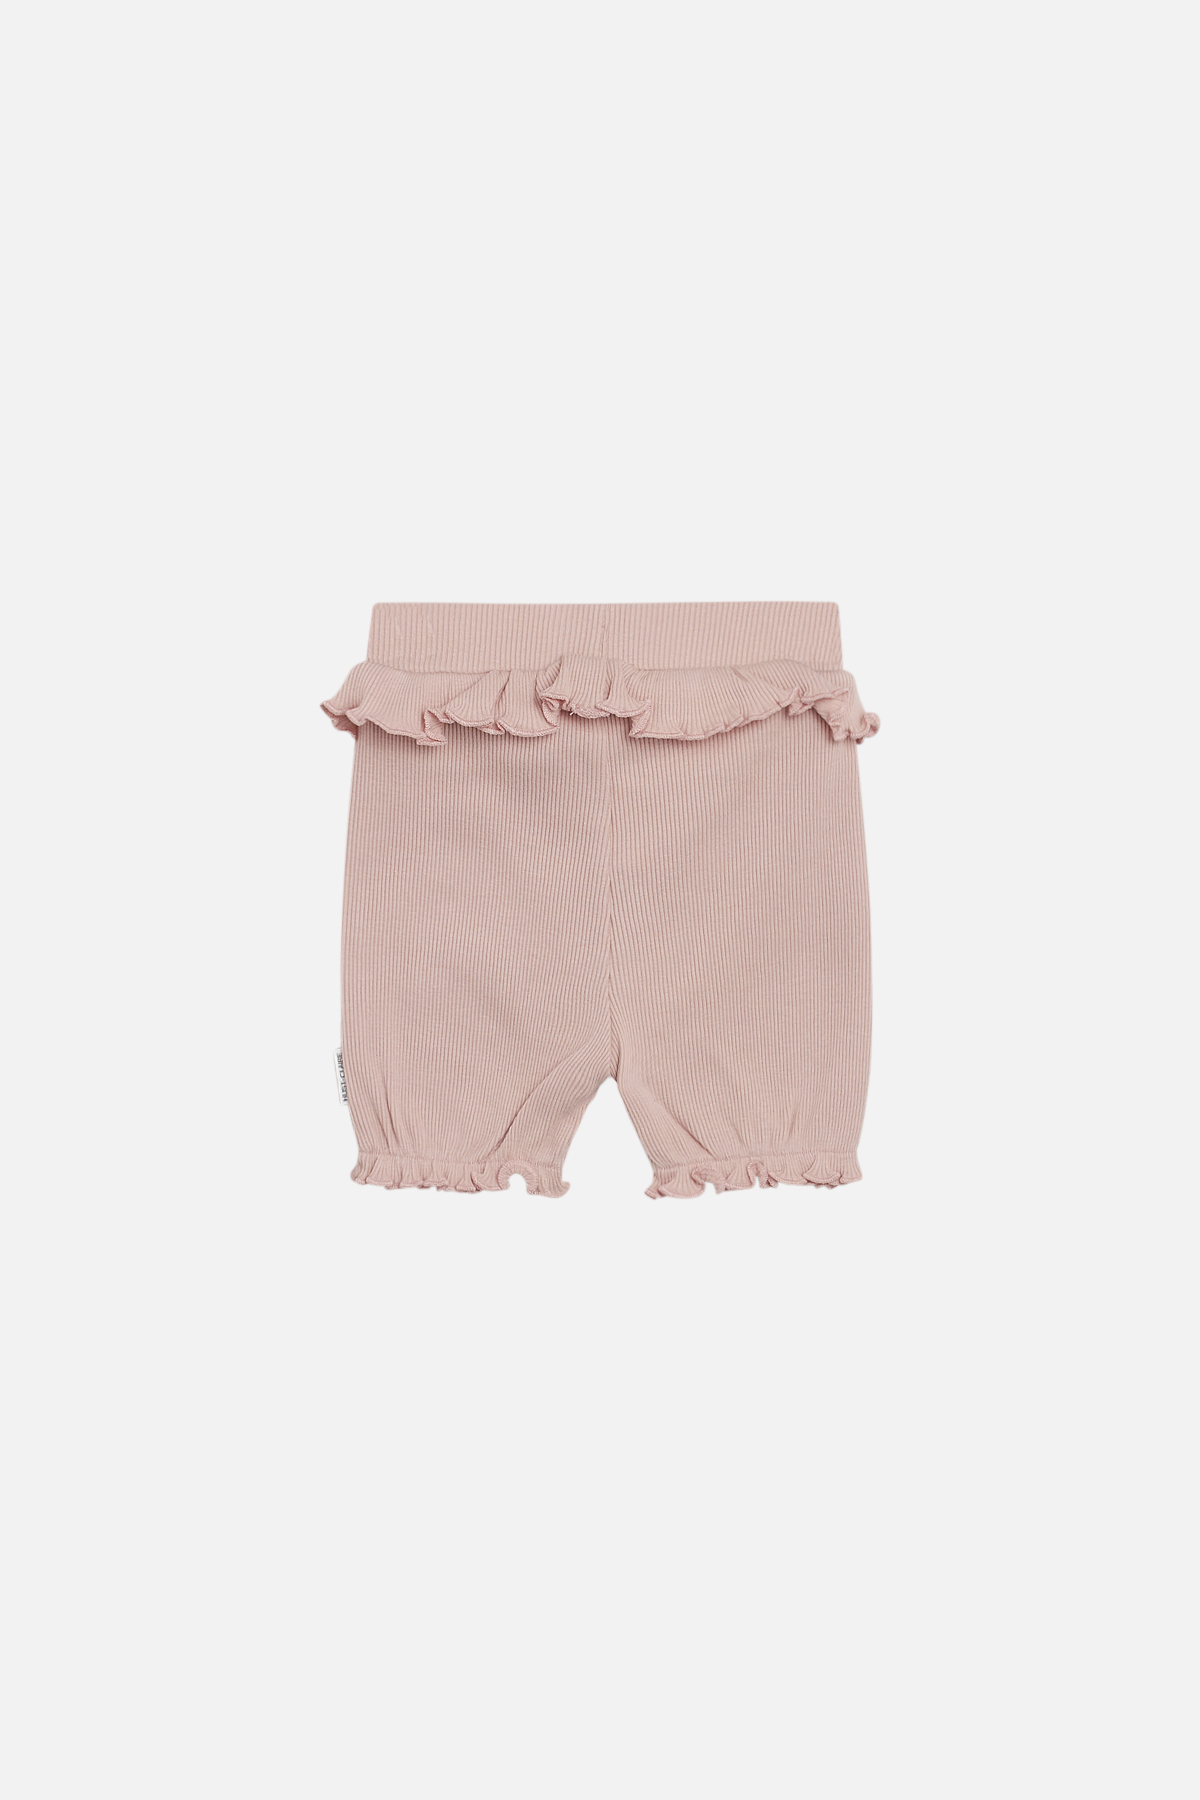 Hust and Claire Halo shorts, Desert red. 62